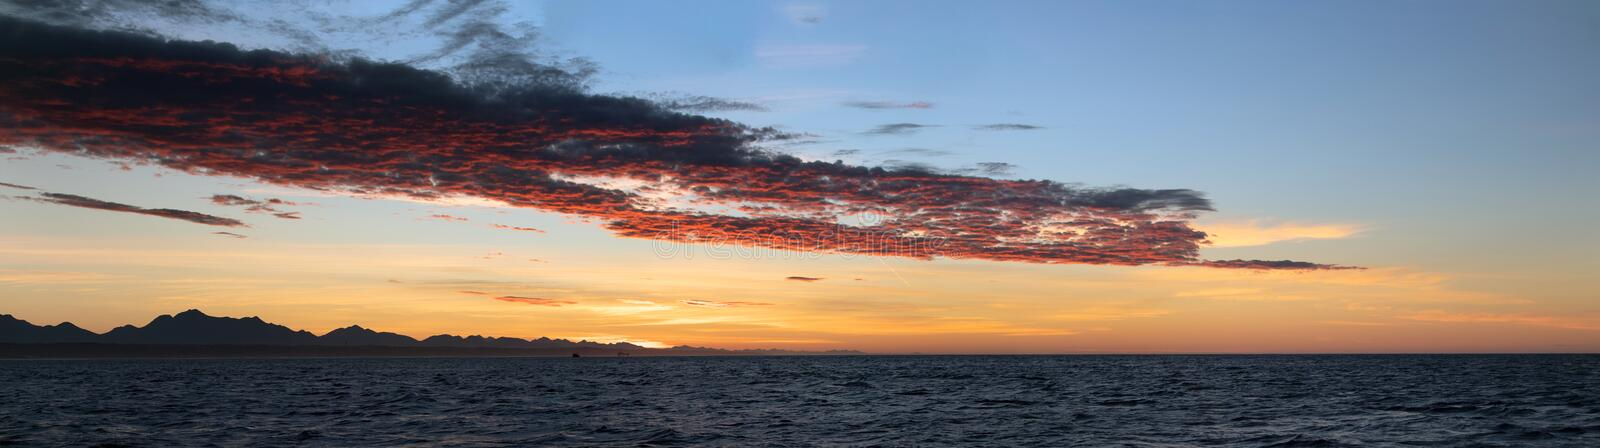 Beautiful Sunset of Seascape with Mountains silhouets. Mossel Bay. South Africa.  royalty free stock photos